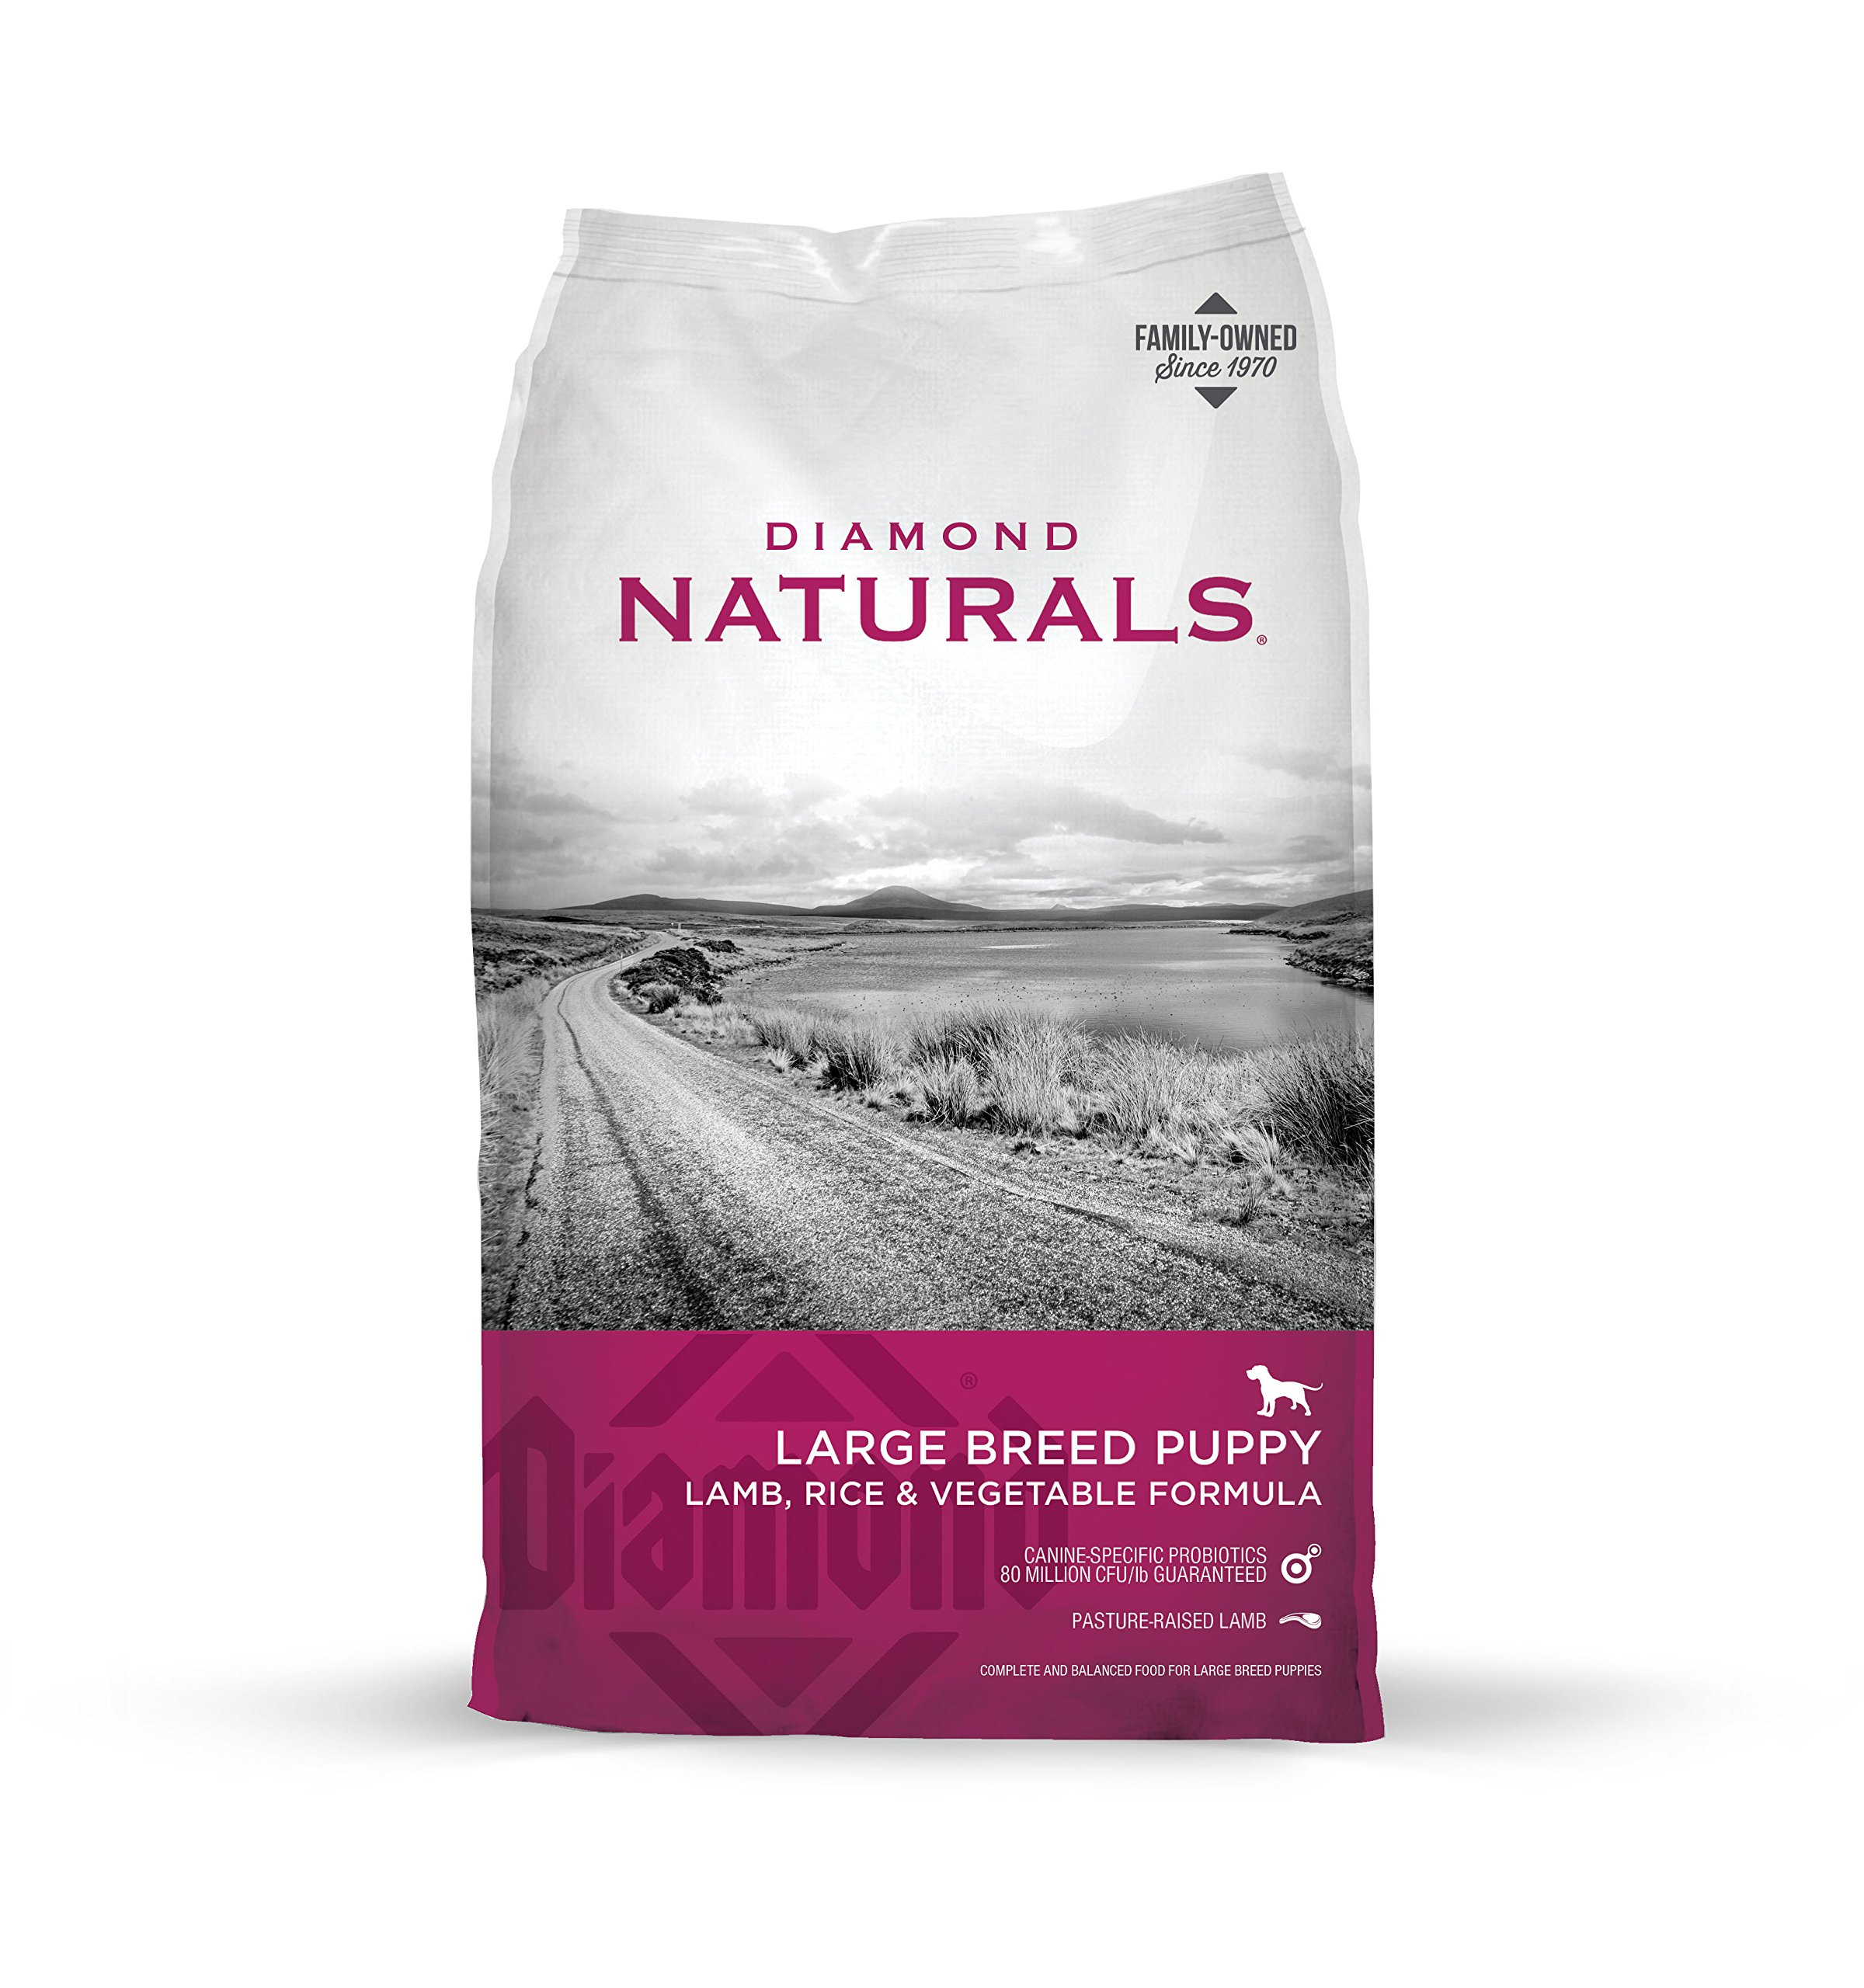 Diamond Naturals Large Breed Puppy Real Meat Recipe Premium Dry Dog Food with Real Pasture Raised Lamb  40lb